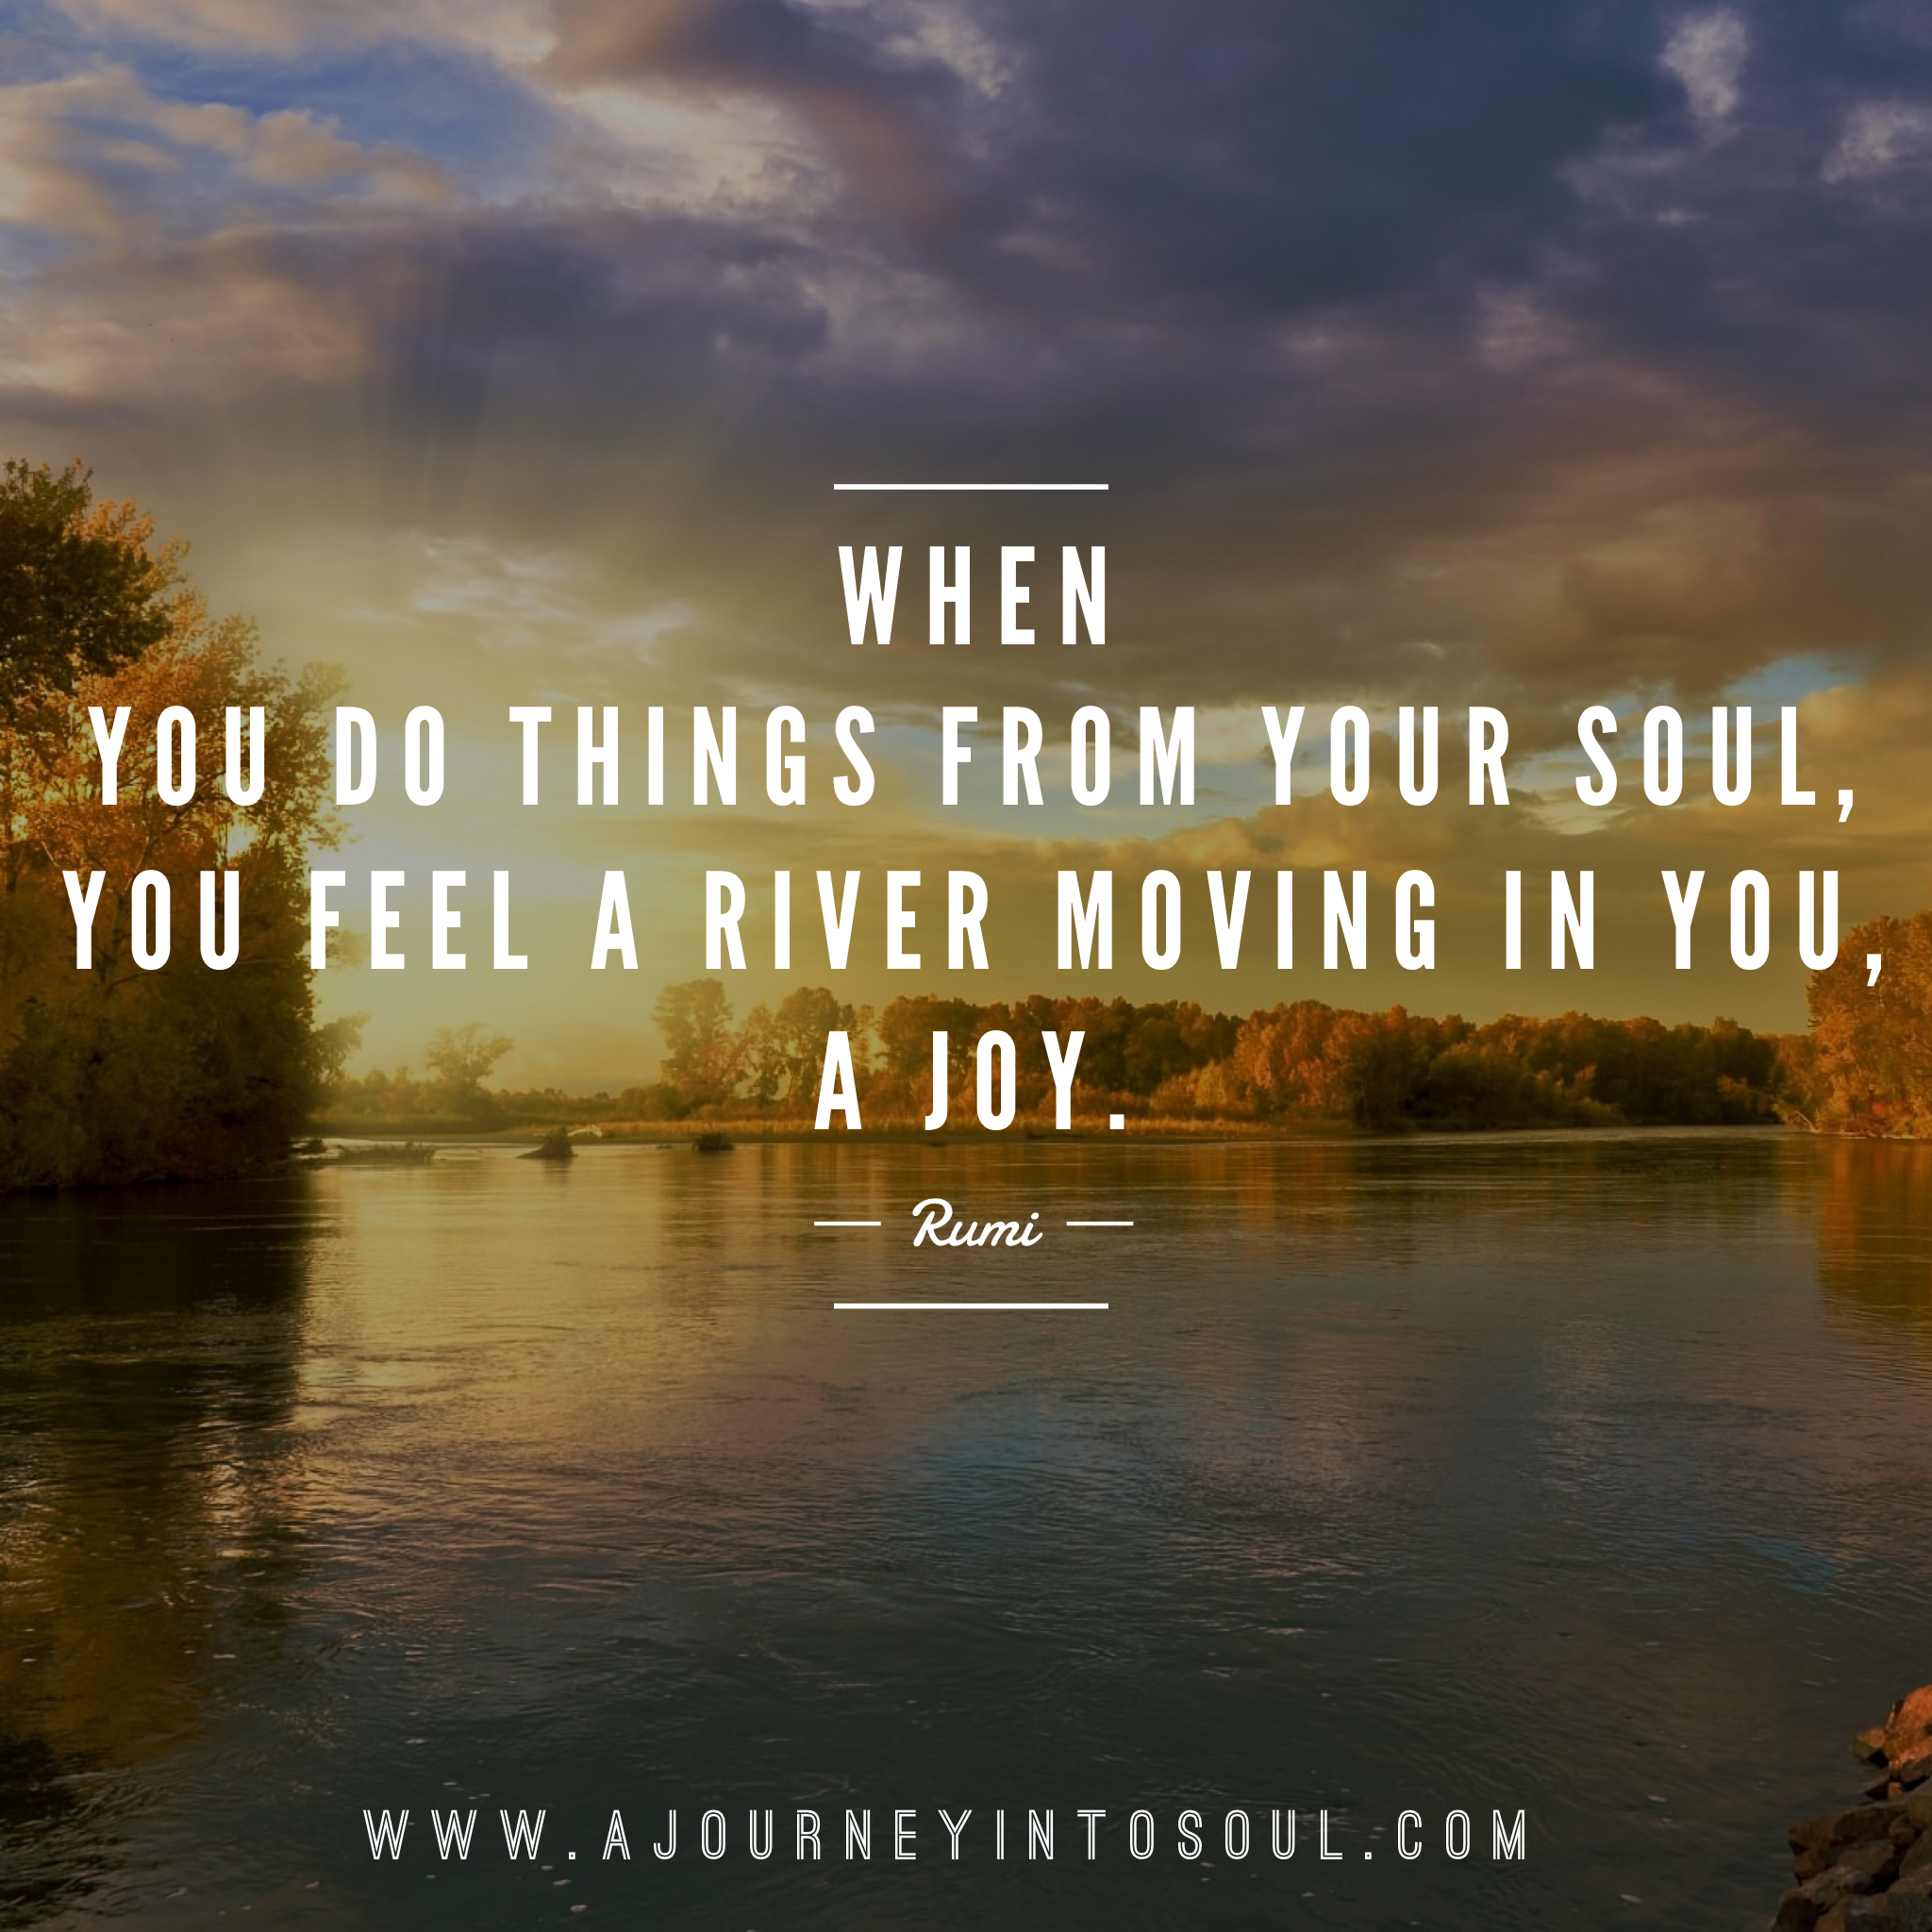 Some Rumi Soul Wisdom When You Do Things From Your Soul You Feel